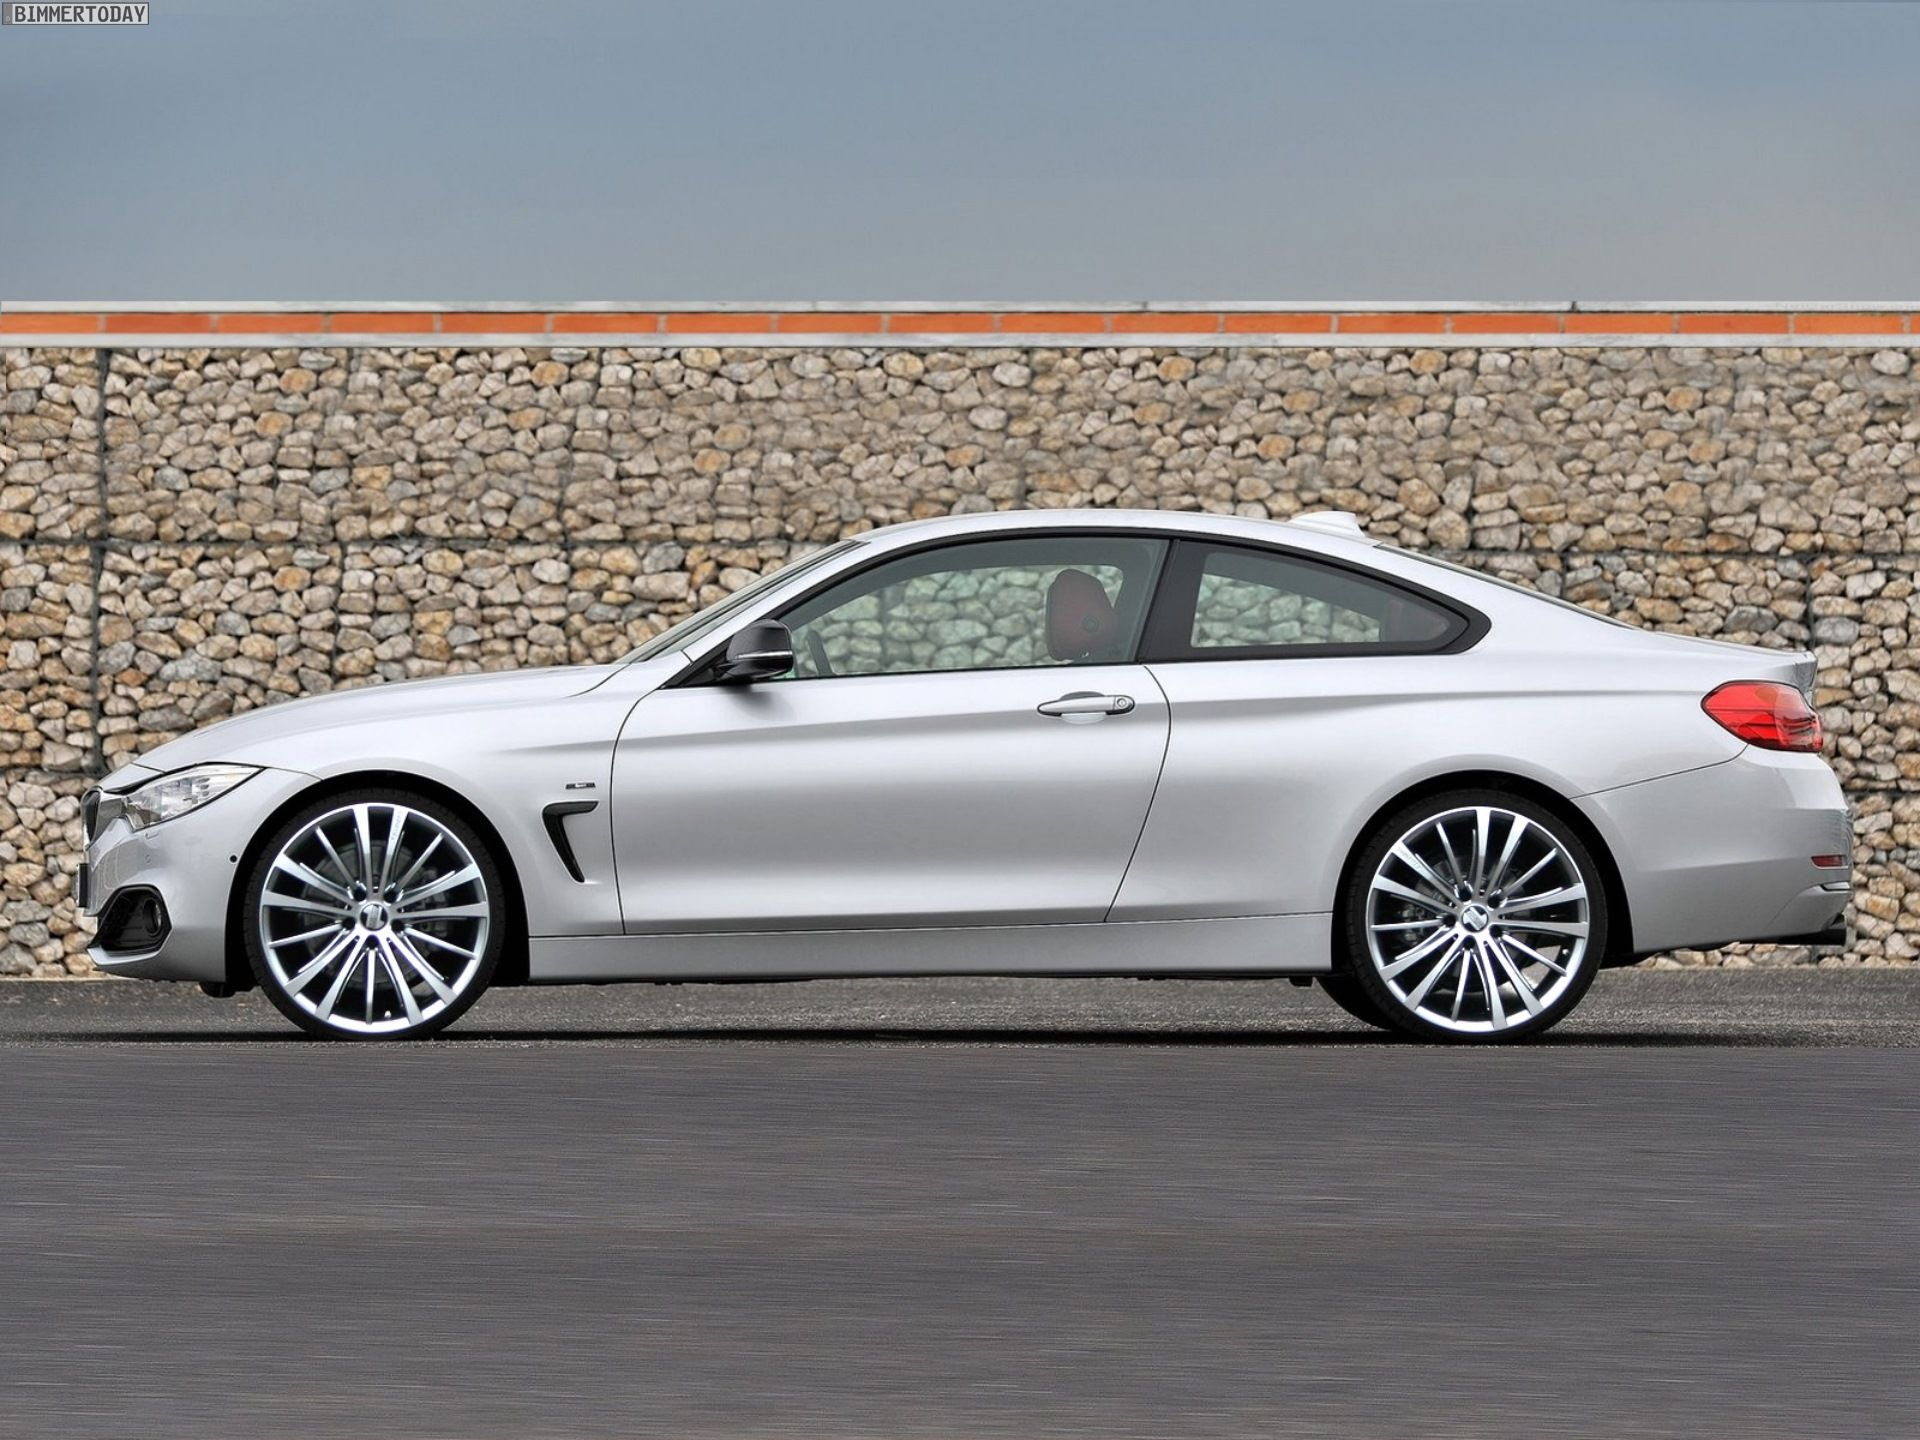 Kelleners Tuning Program For Bmw 4 Series Coupe Looks Amazing